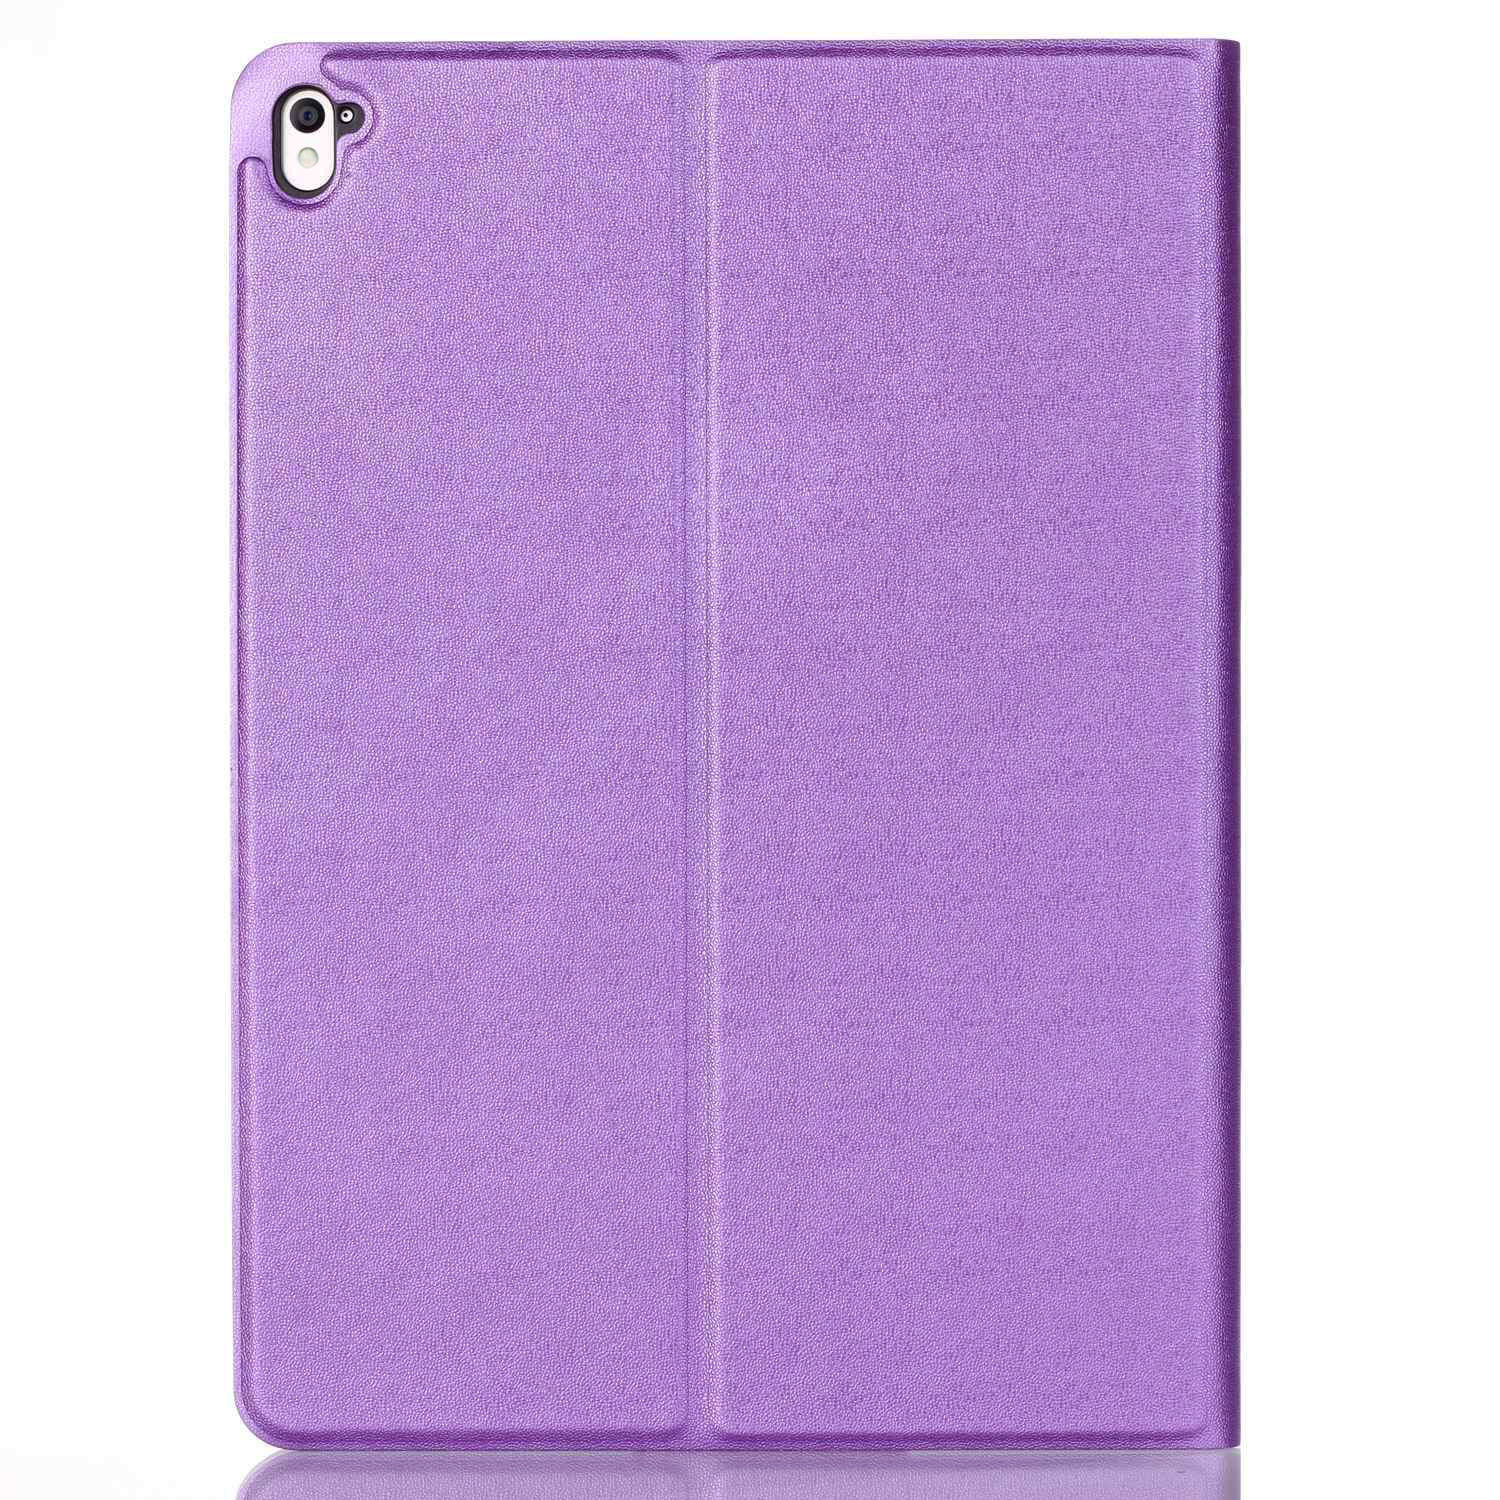 Custodia-Per-Apple-IPAD-Pro-IN-9-7-Pollici-Case-Cover-Protettiva-Skin-Shell miniatura 31